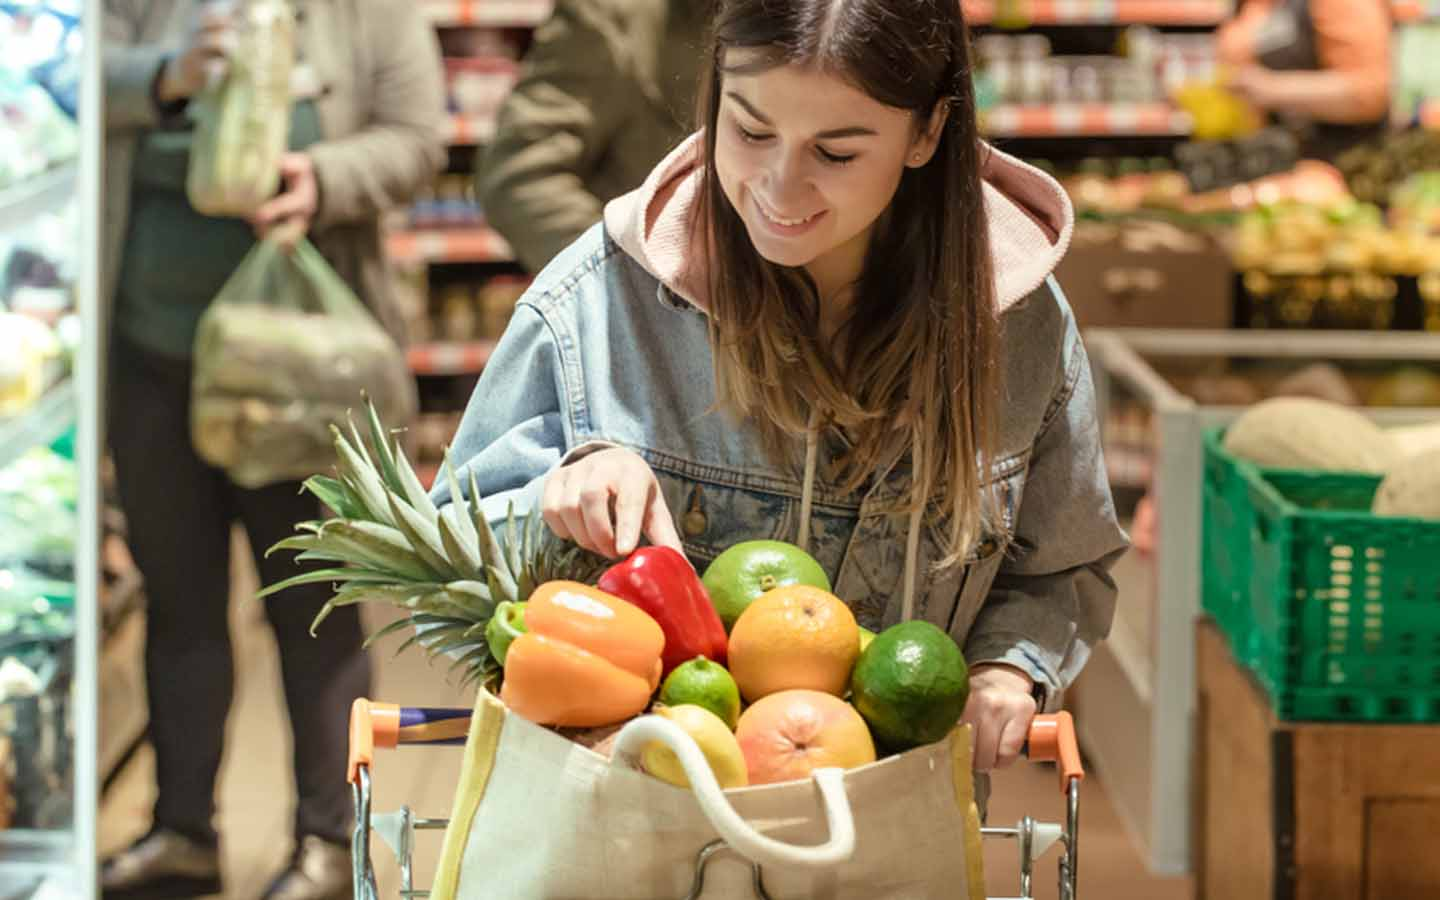 Woman grocery shopping with a bag full of vegetables and fruits